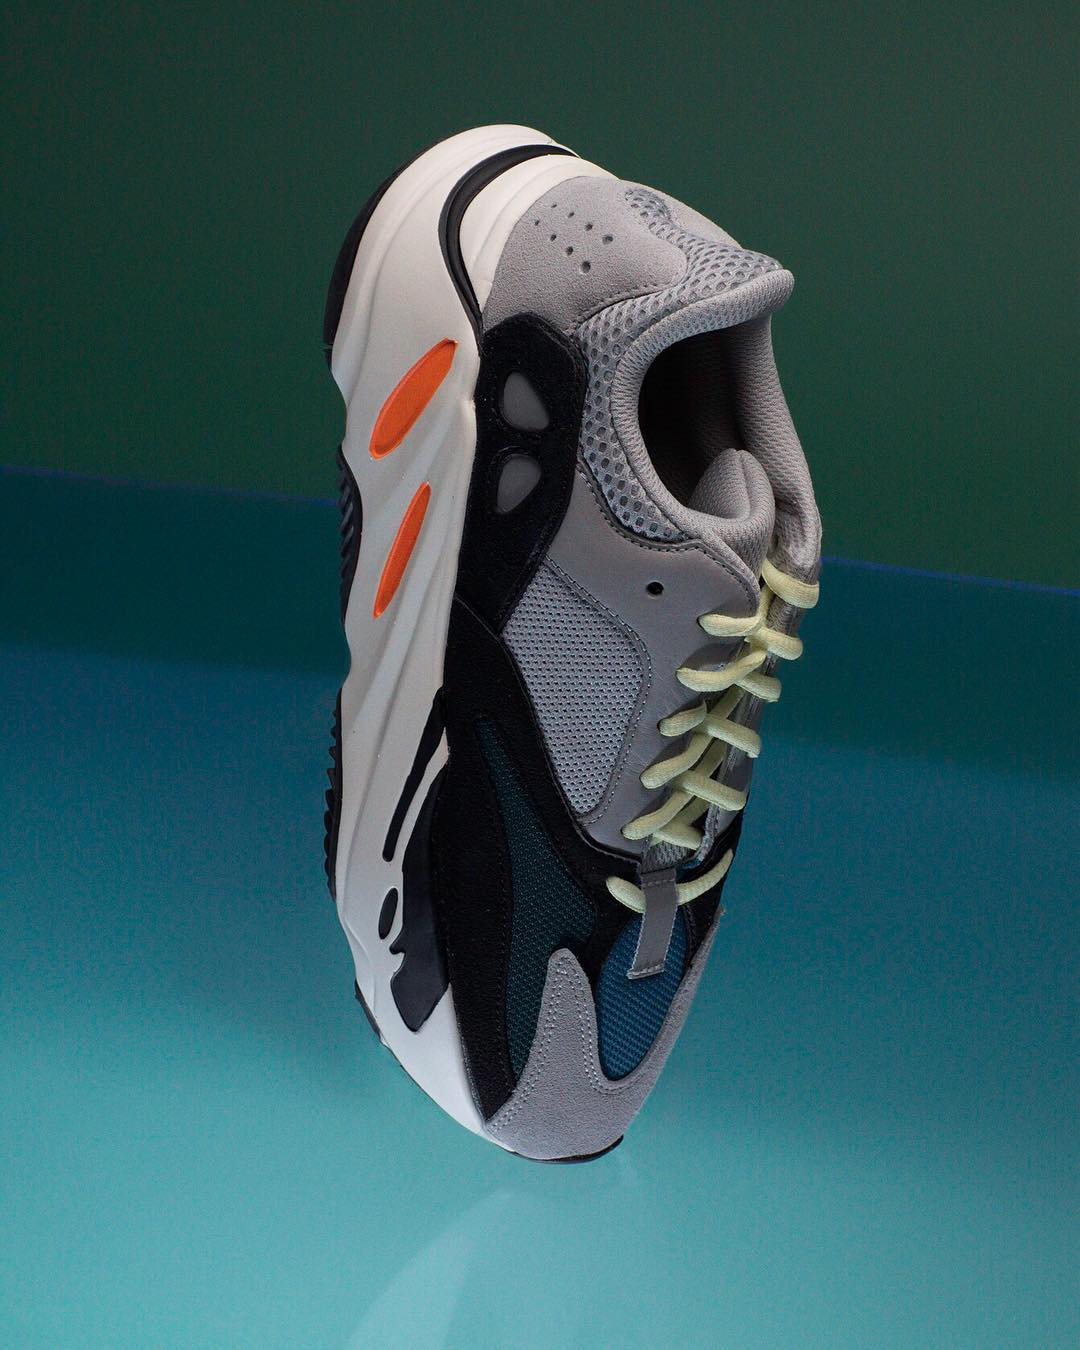 bcd728ee28689 The Yeezy Wave Runner Restock Has Prices Falling. The Yeezy Boost 700 ...